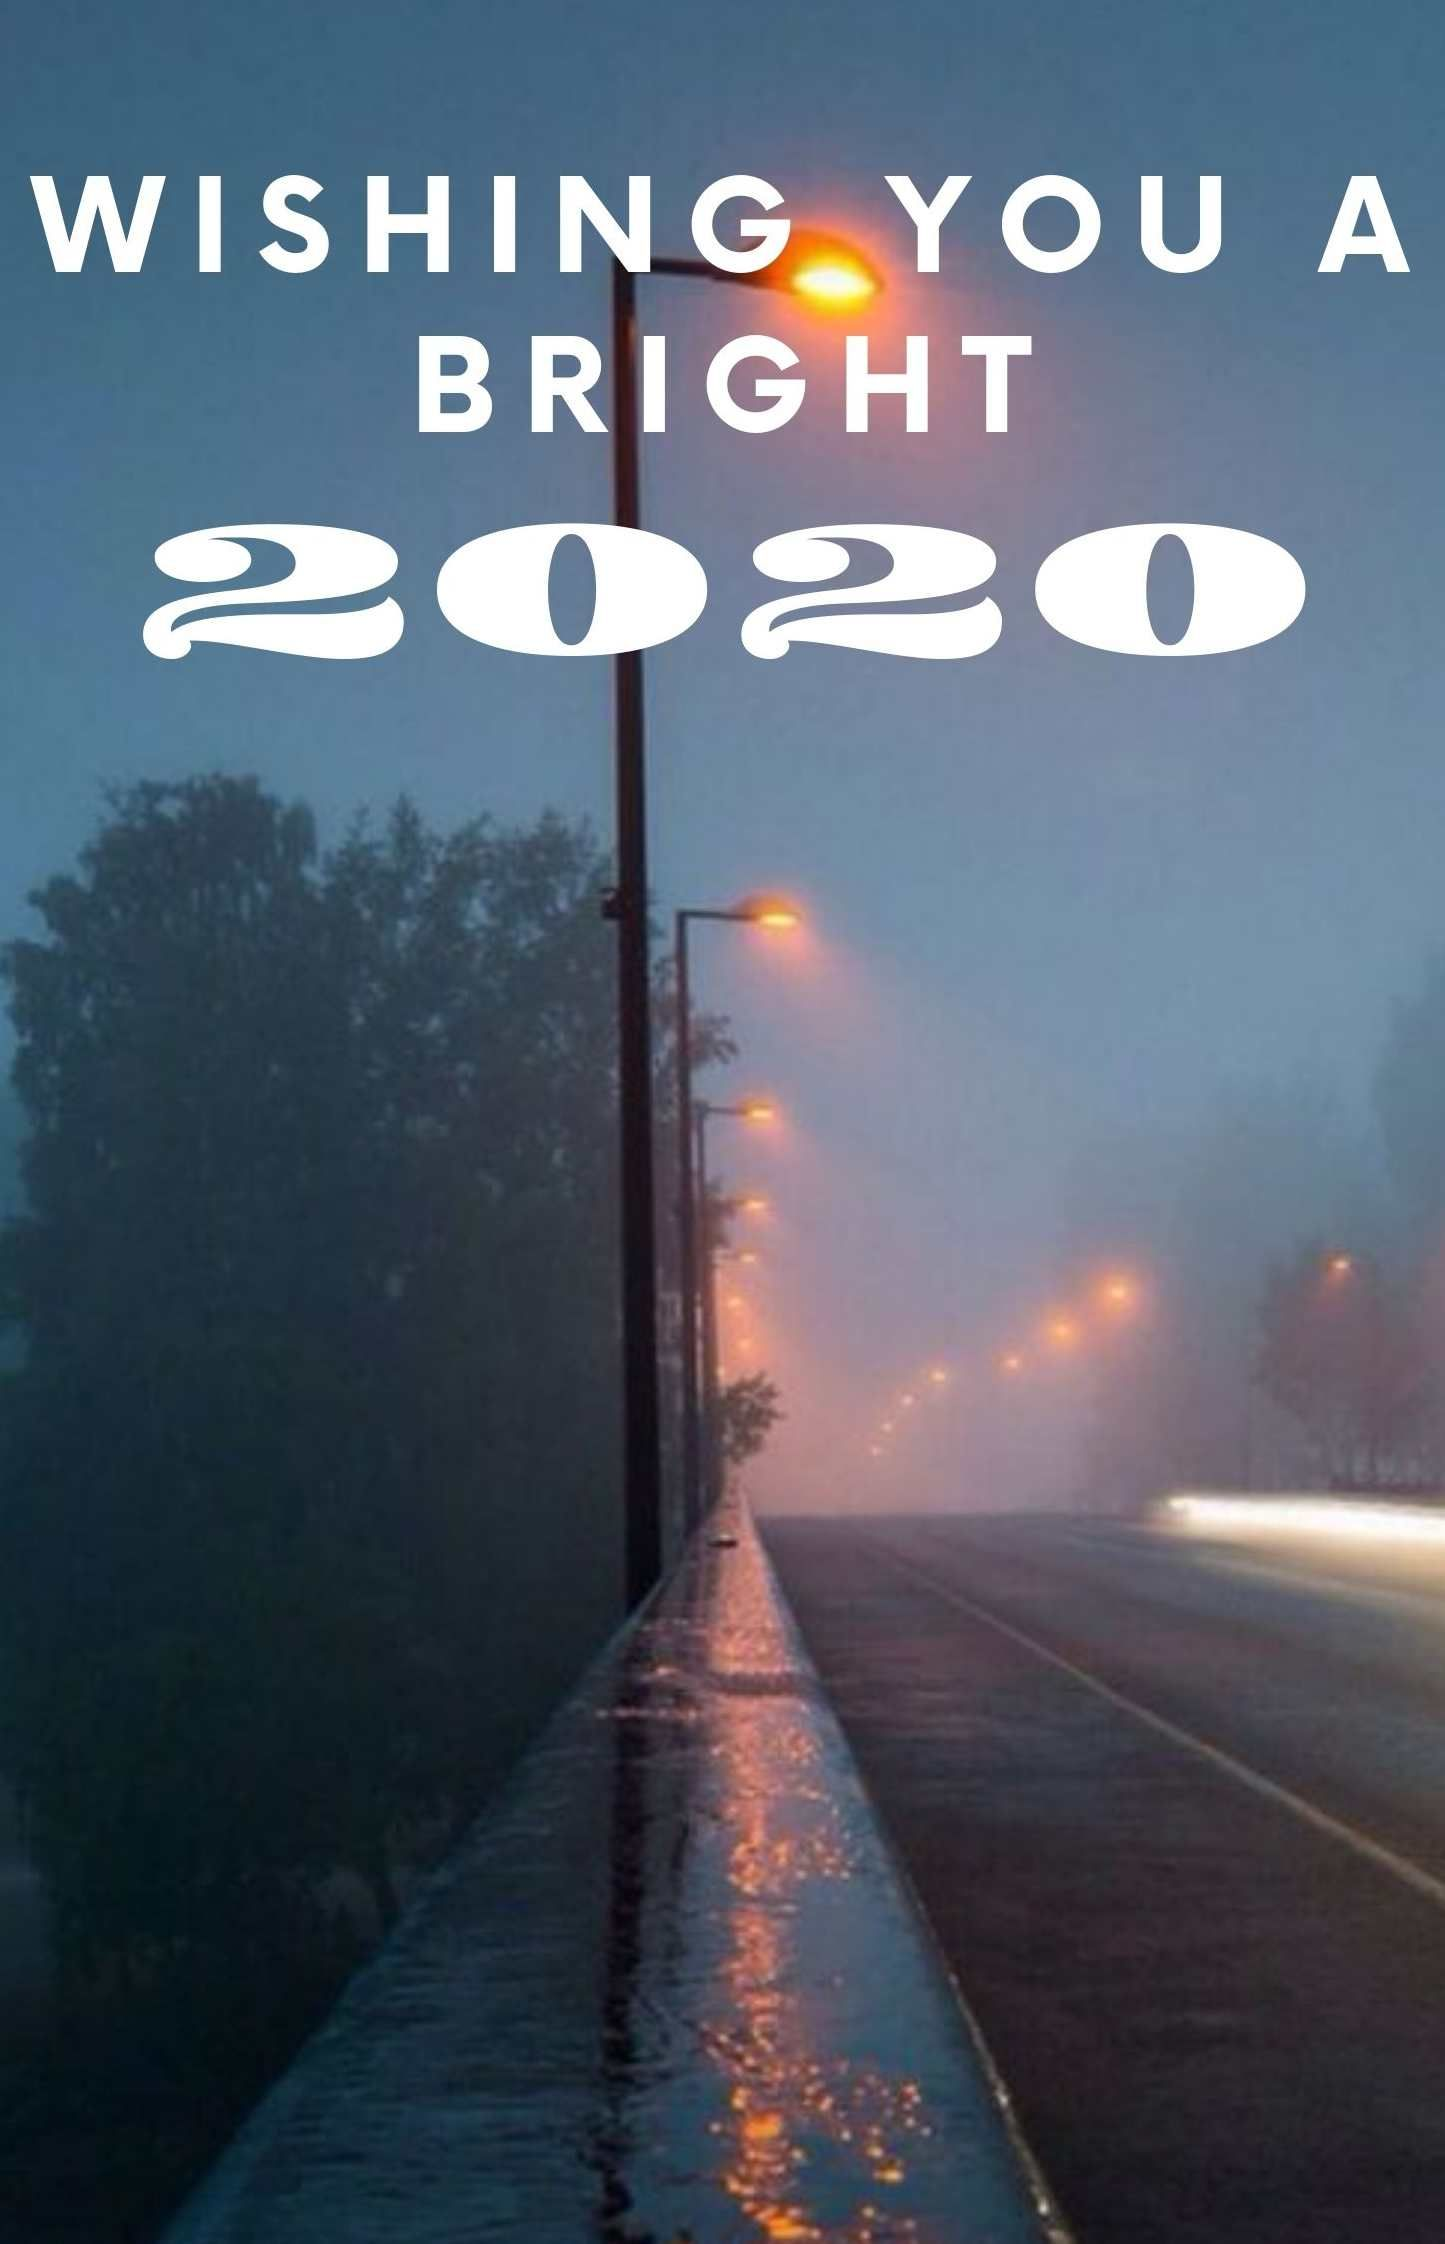 New year 2020 poster for friends and family.